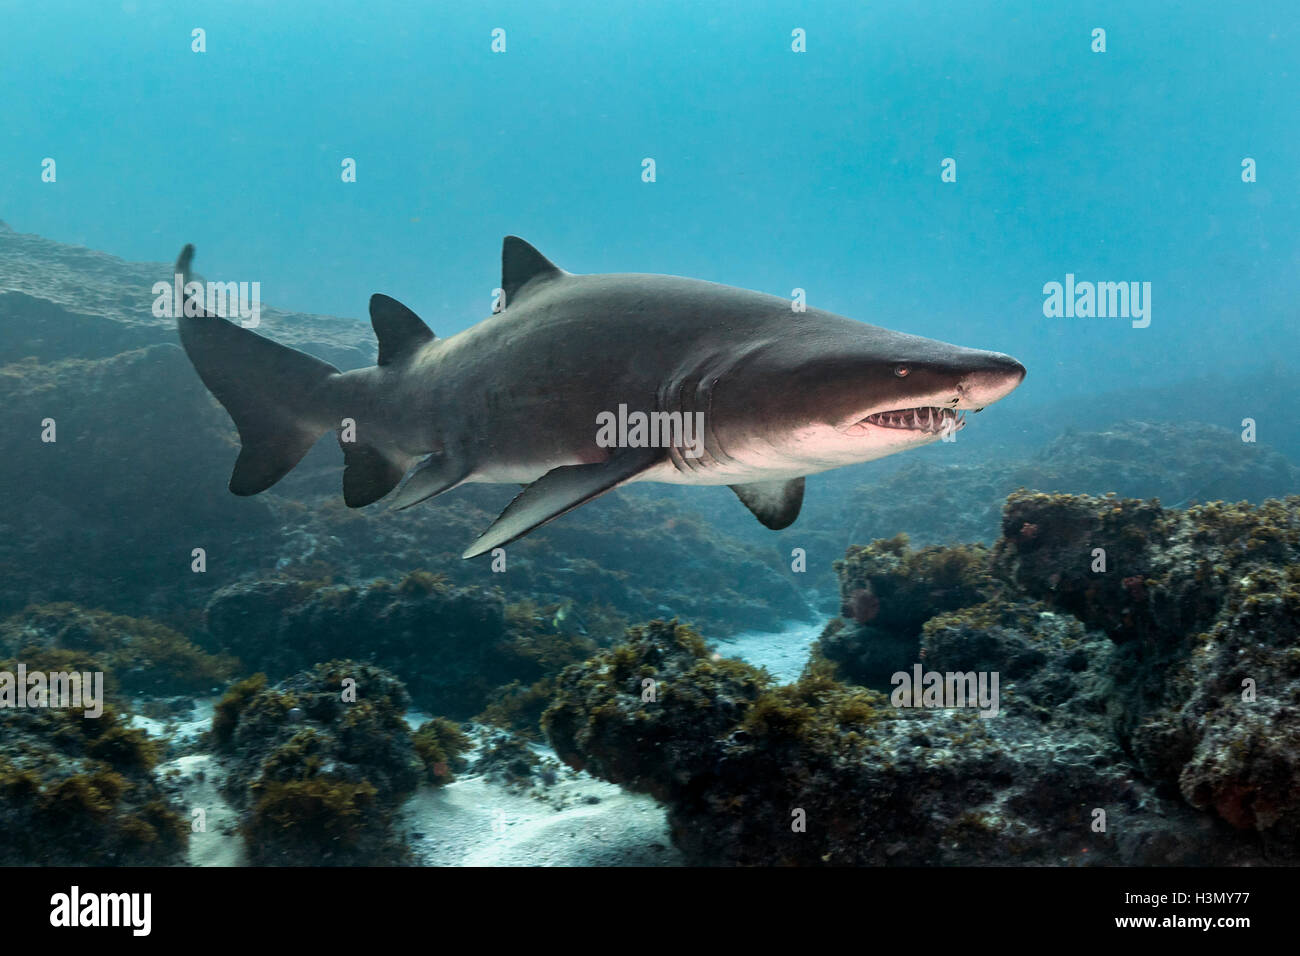 Ragged Tooth or Sand Tiger Shark (Carcharias Taurus) cruising reefs, Aliwal Shoal, South Africa - Stock Image